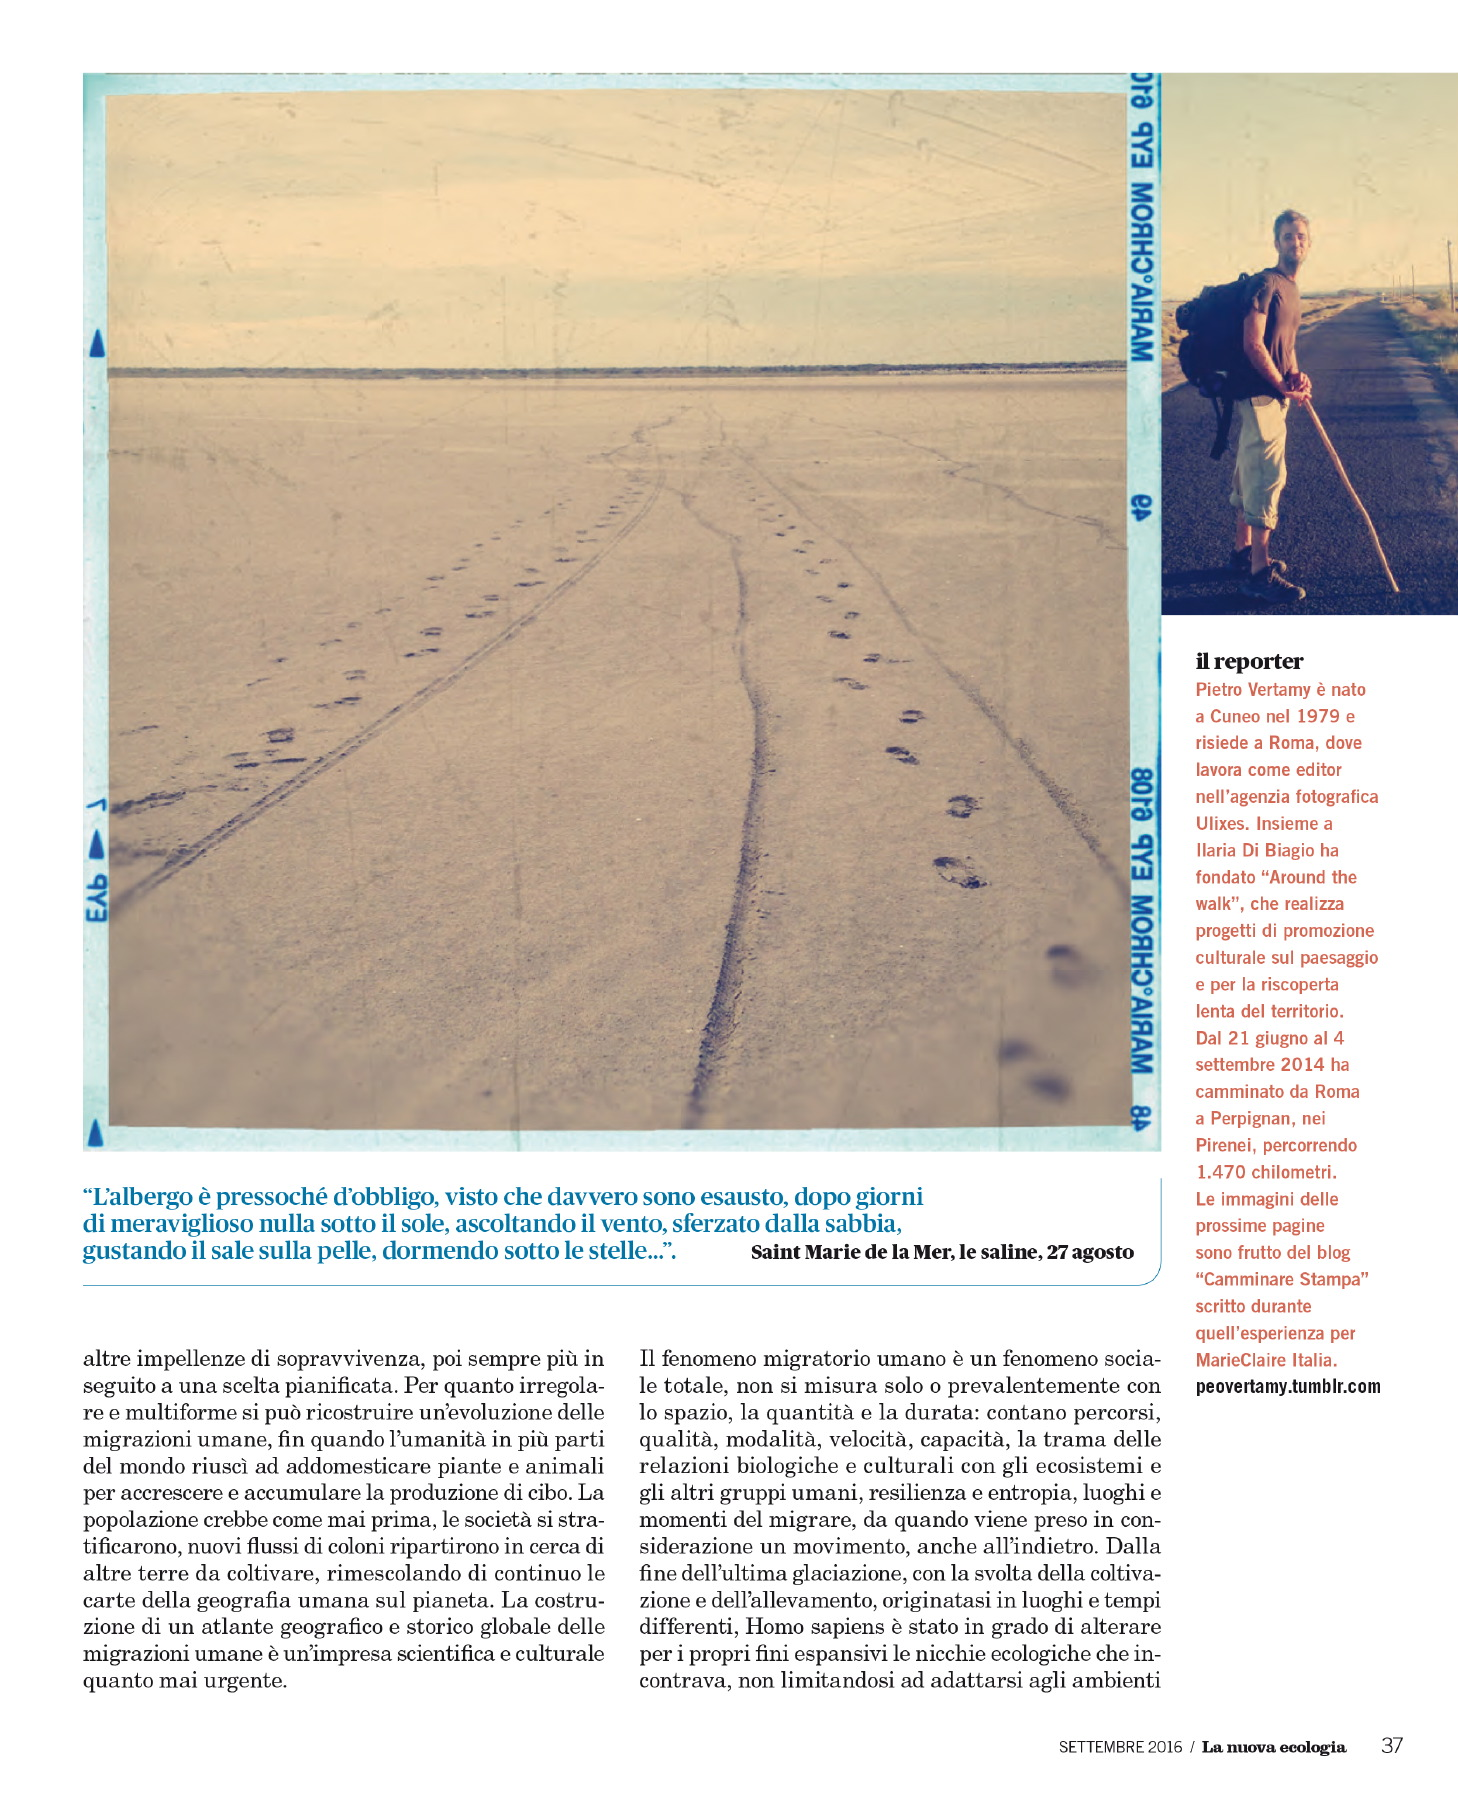 around-the-walk-_-pietro-vertamy-_tearsheet-nuova-ecologia-02